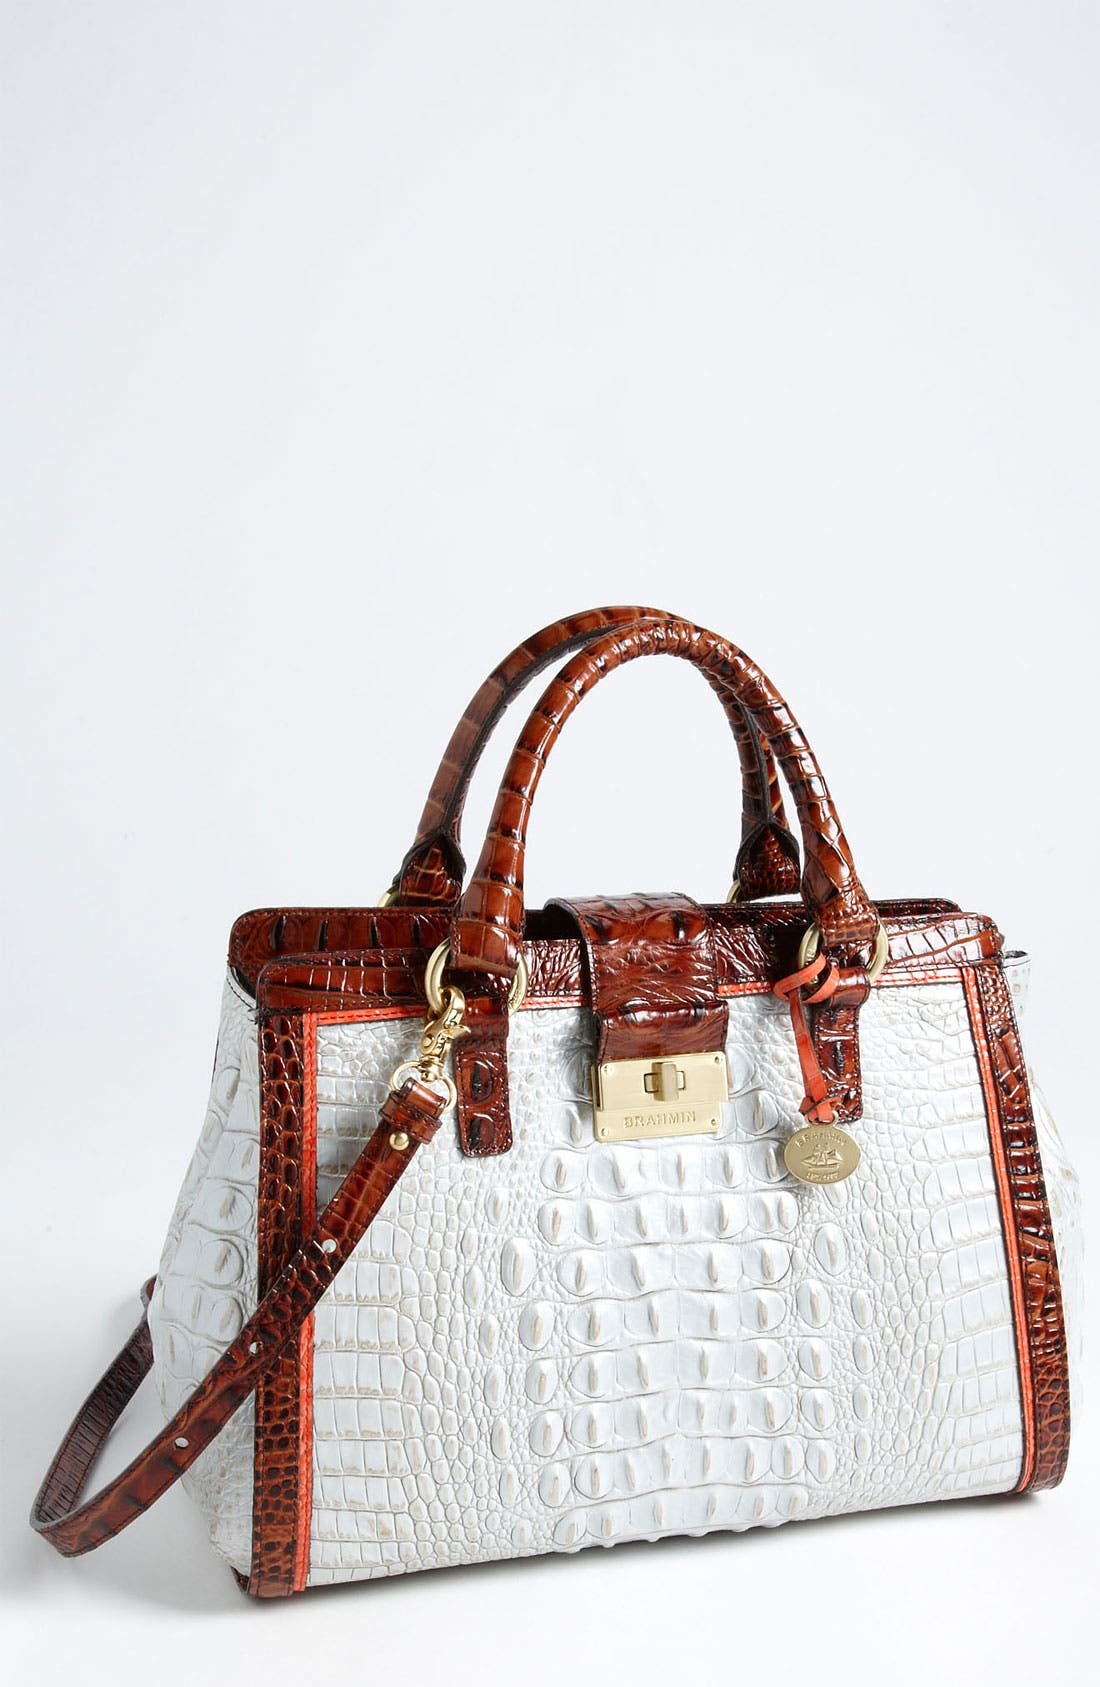 Alternate Image 1 Selected - Brahmin 'Tri Color Annabelle' Handbag